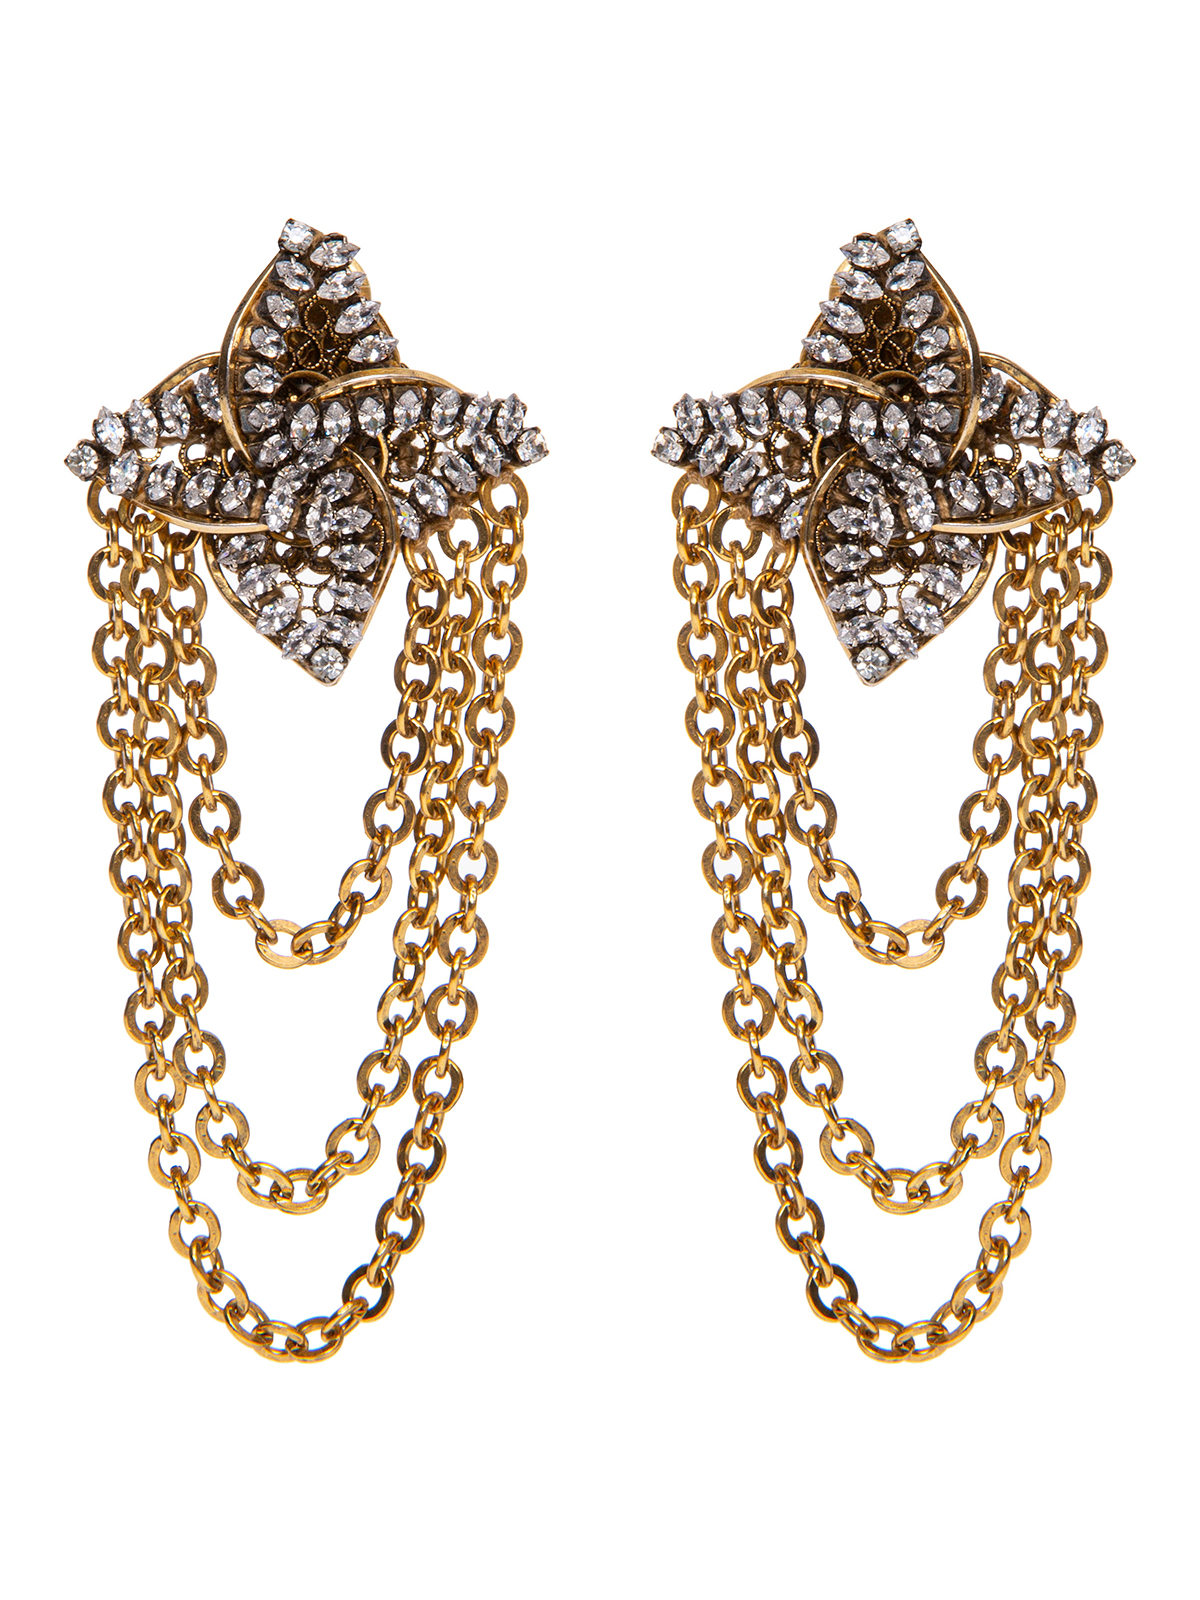 Earrings with  jewel helix-shaped decoration with chain cascade